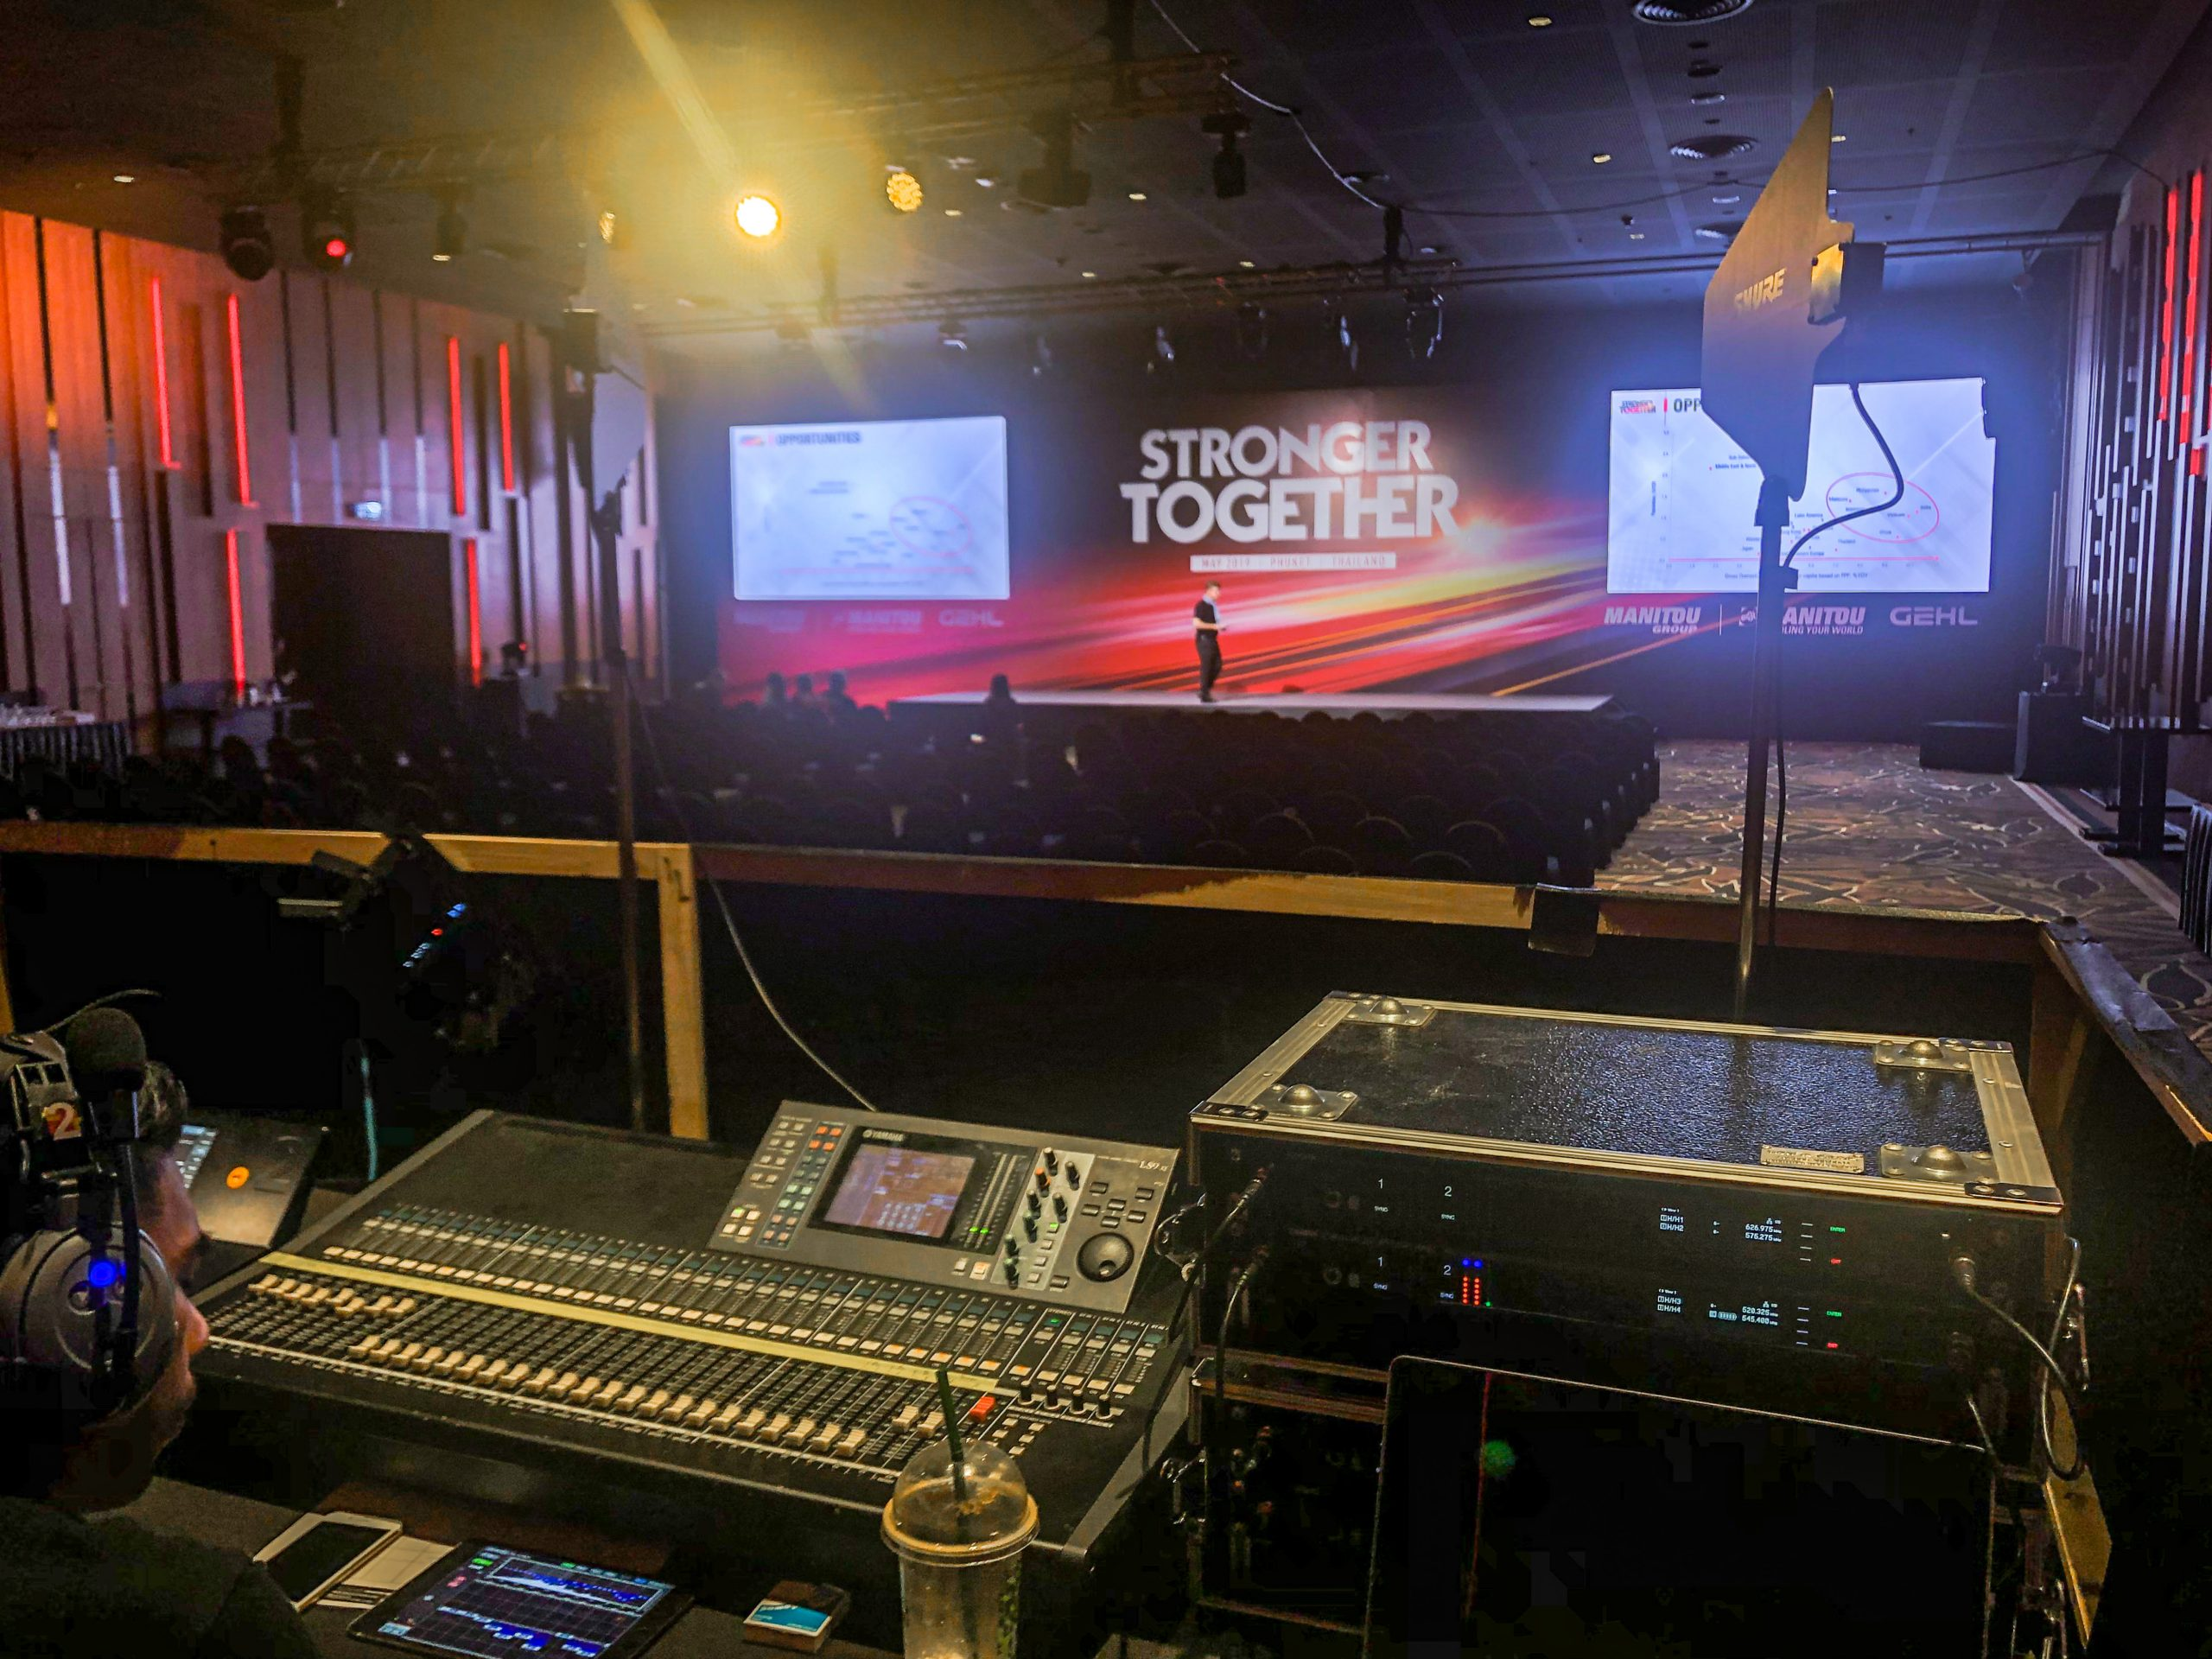 Thailand - Manitou Event - Audio Visual Production Desk Phuket @Jo Aigner